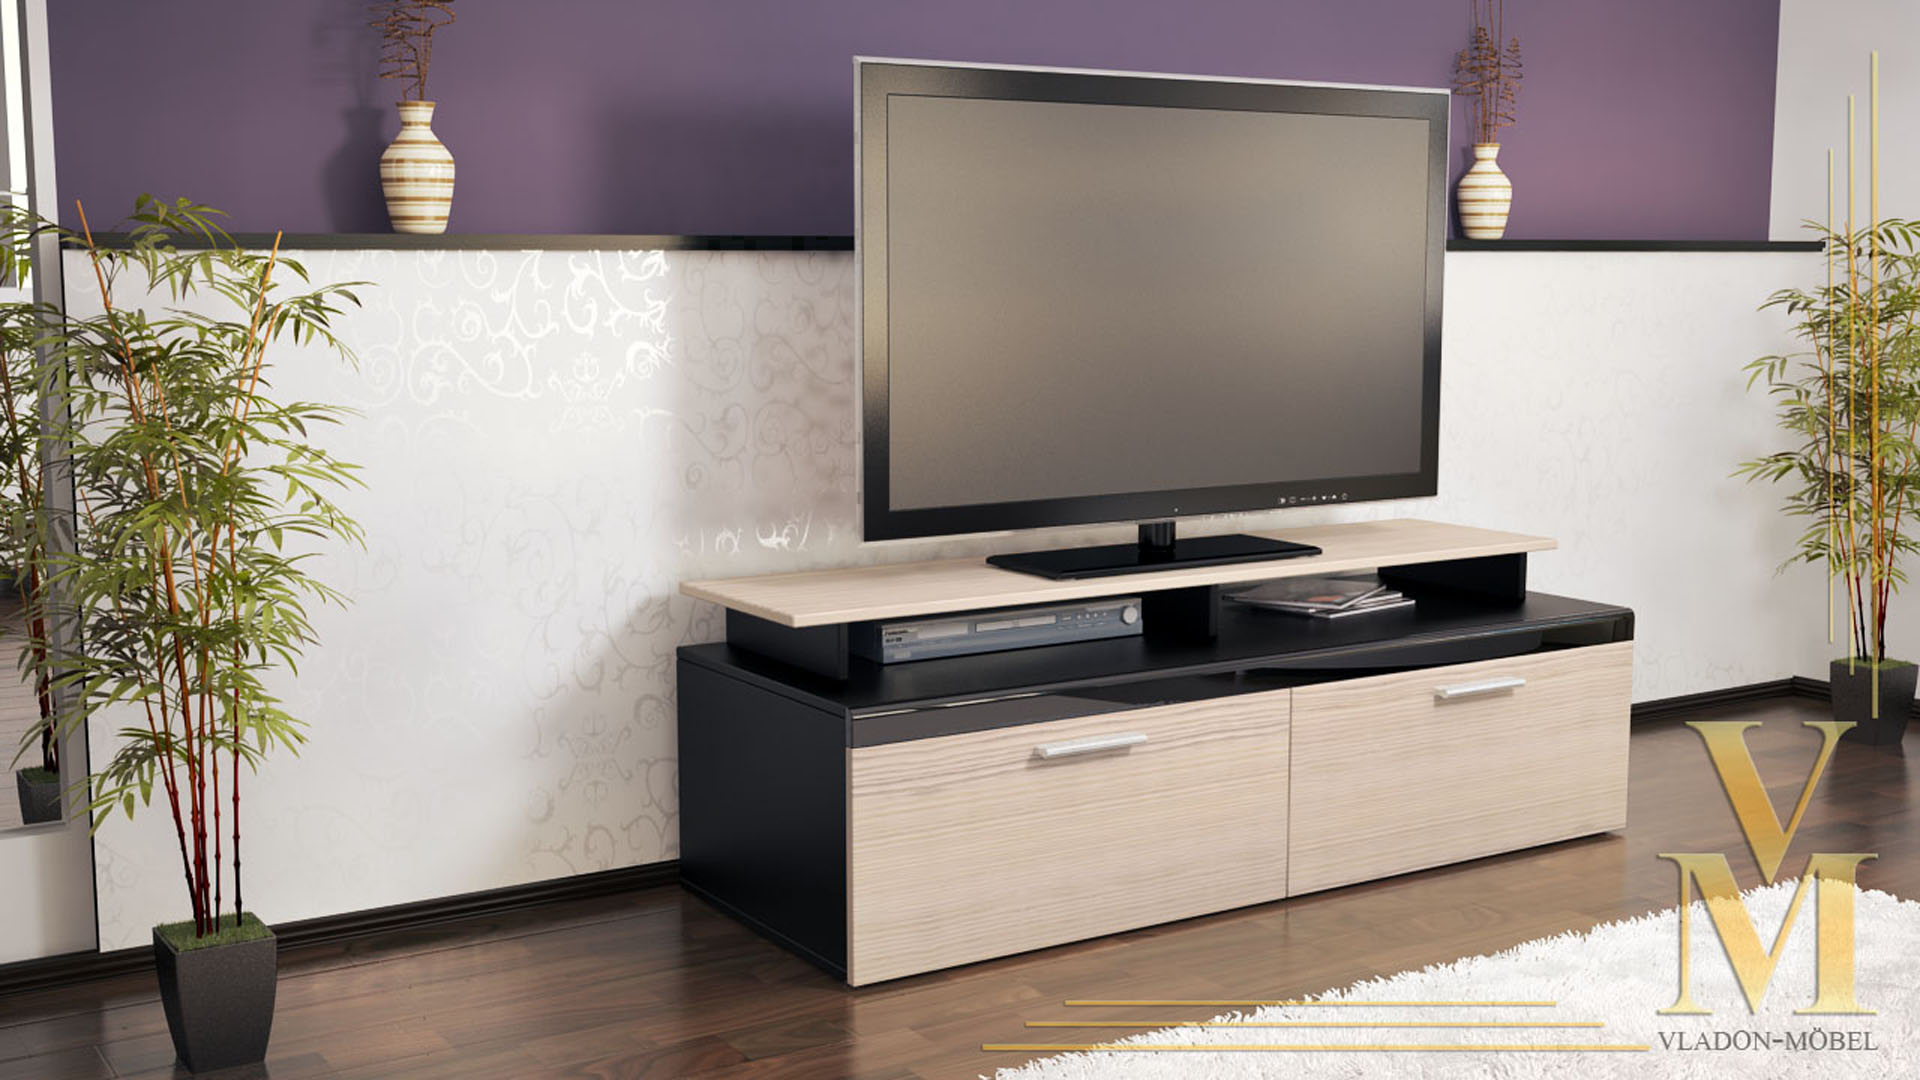 tv board lowboard sideboard tisch atlanta schwarz hochglanz naturt ne ebay. Black Bedroom Furniture Sets. Home Design Ideas